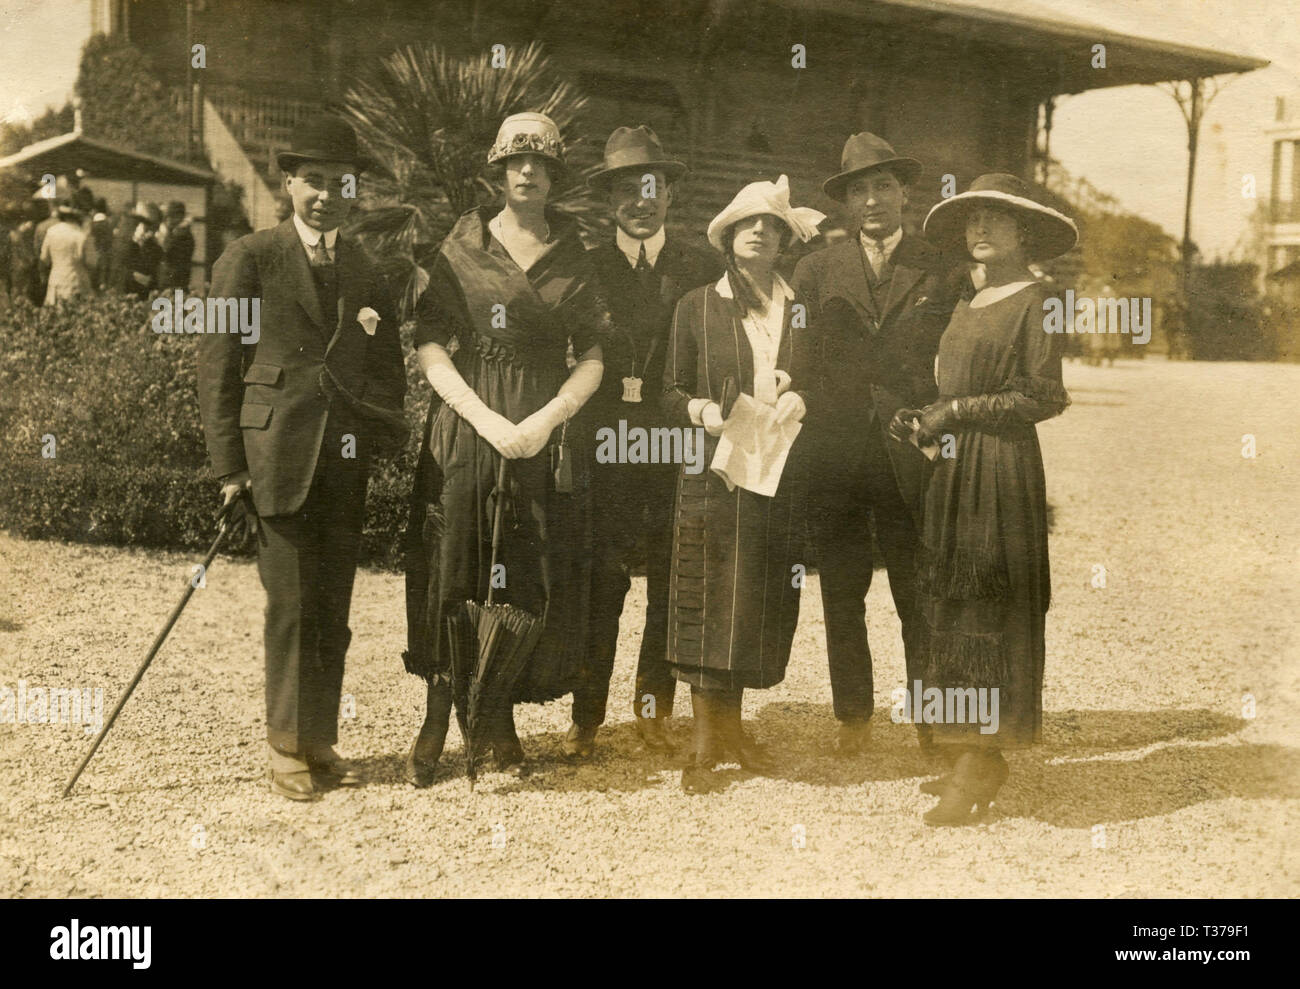 Group of friends at the Parage dei Parioli horse races, Rome, Italy 1919 - Stock Image